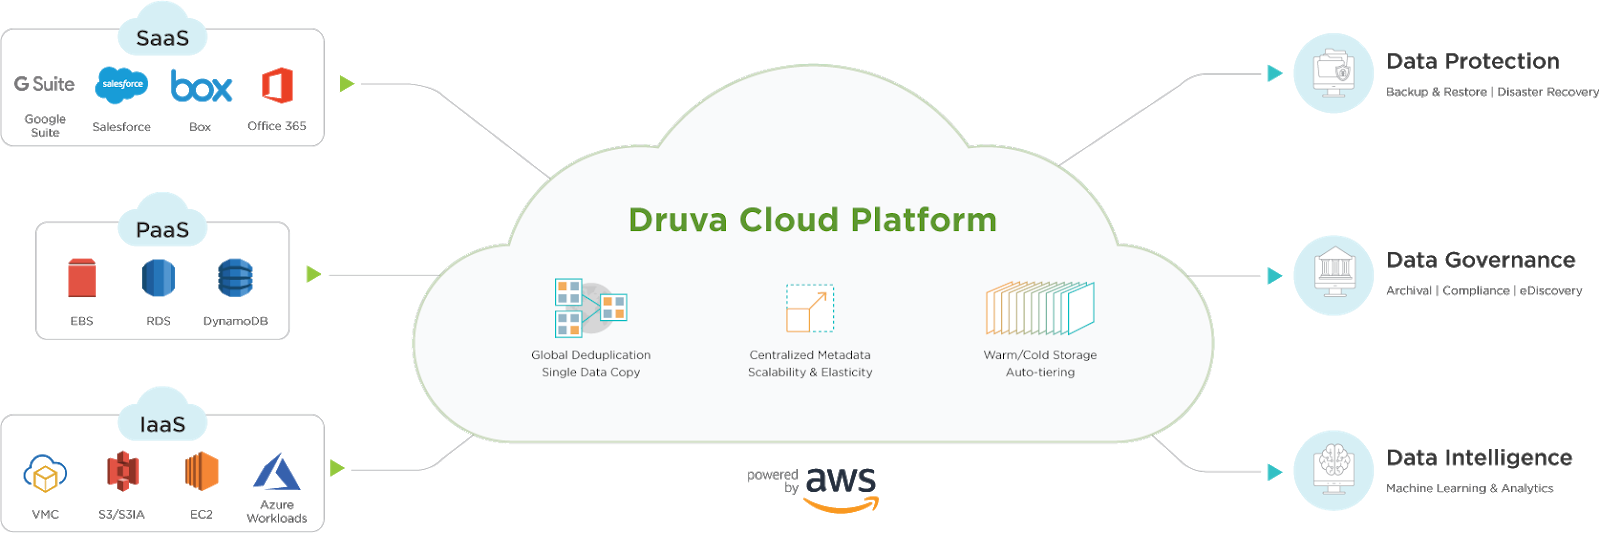 Image showing the Druva Cloud Platform.